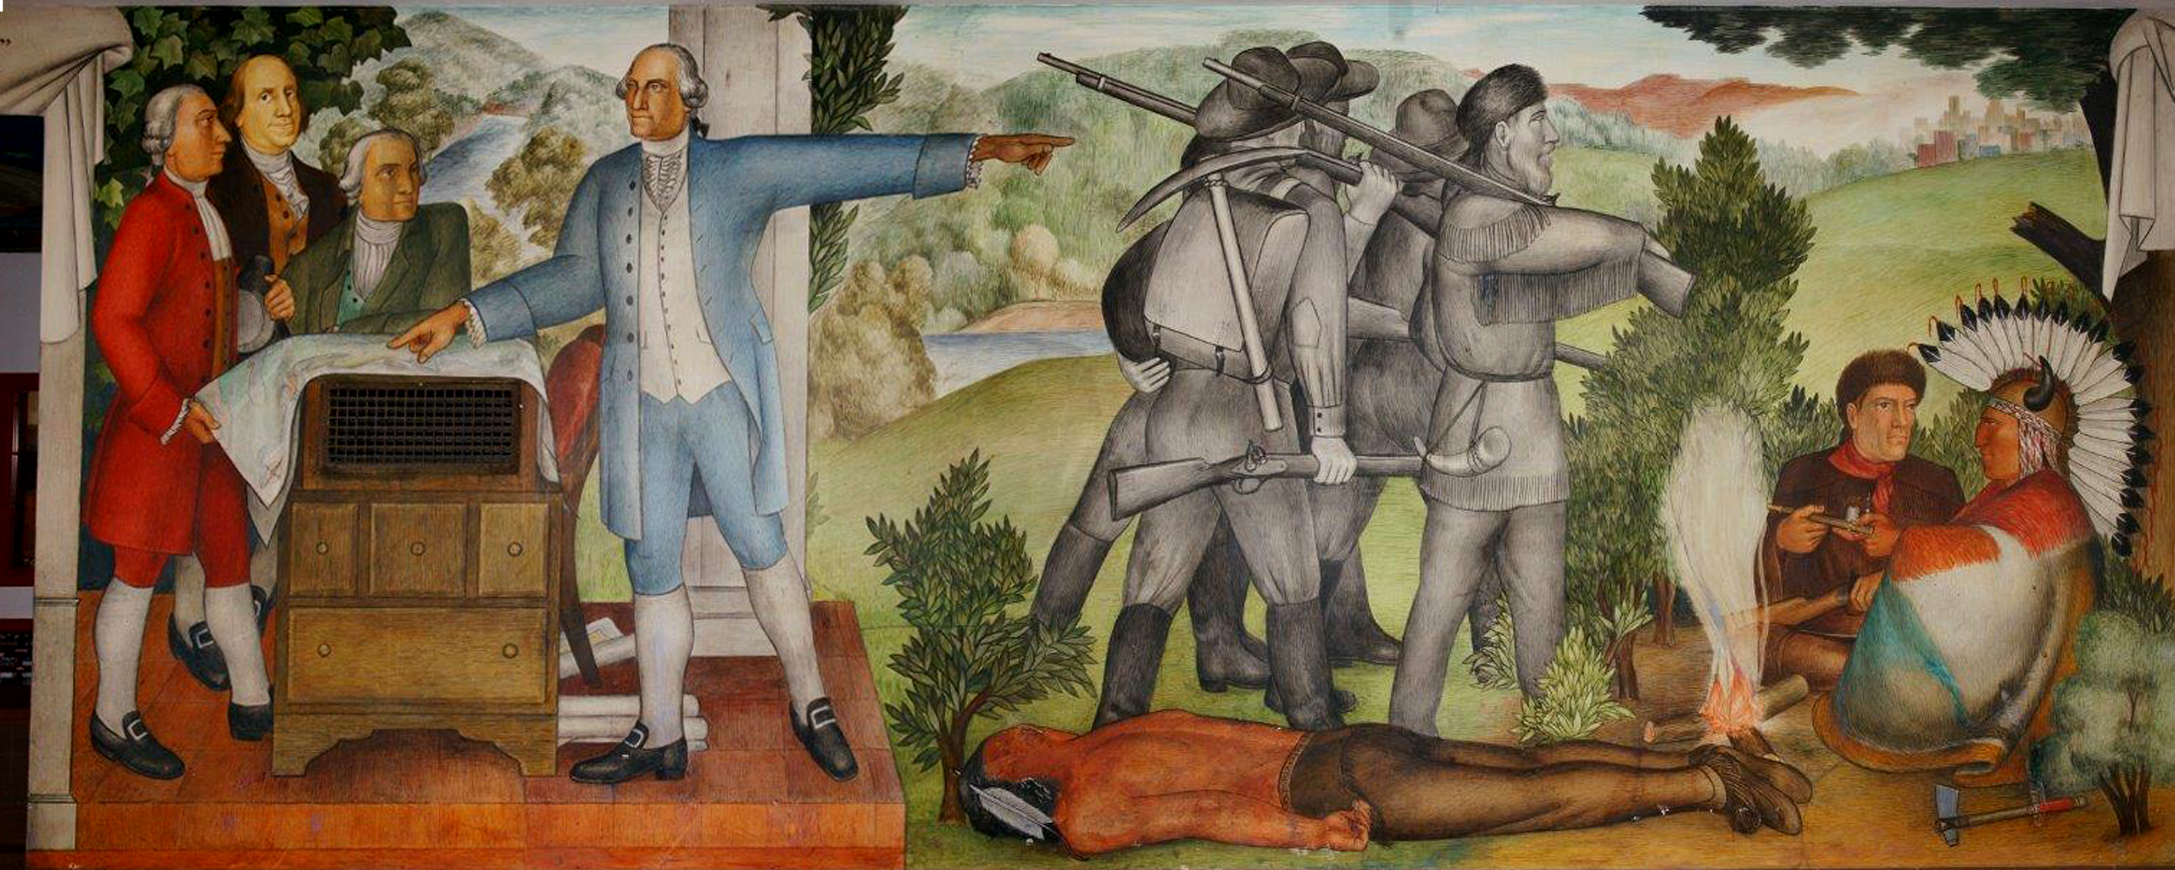 A painting of George Washington depicting gray-toned figures of soldiers who are marching into the wilderness with guns over their shoulder, stepping over the body of a dead Native American man.